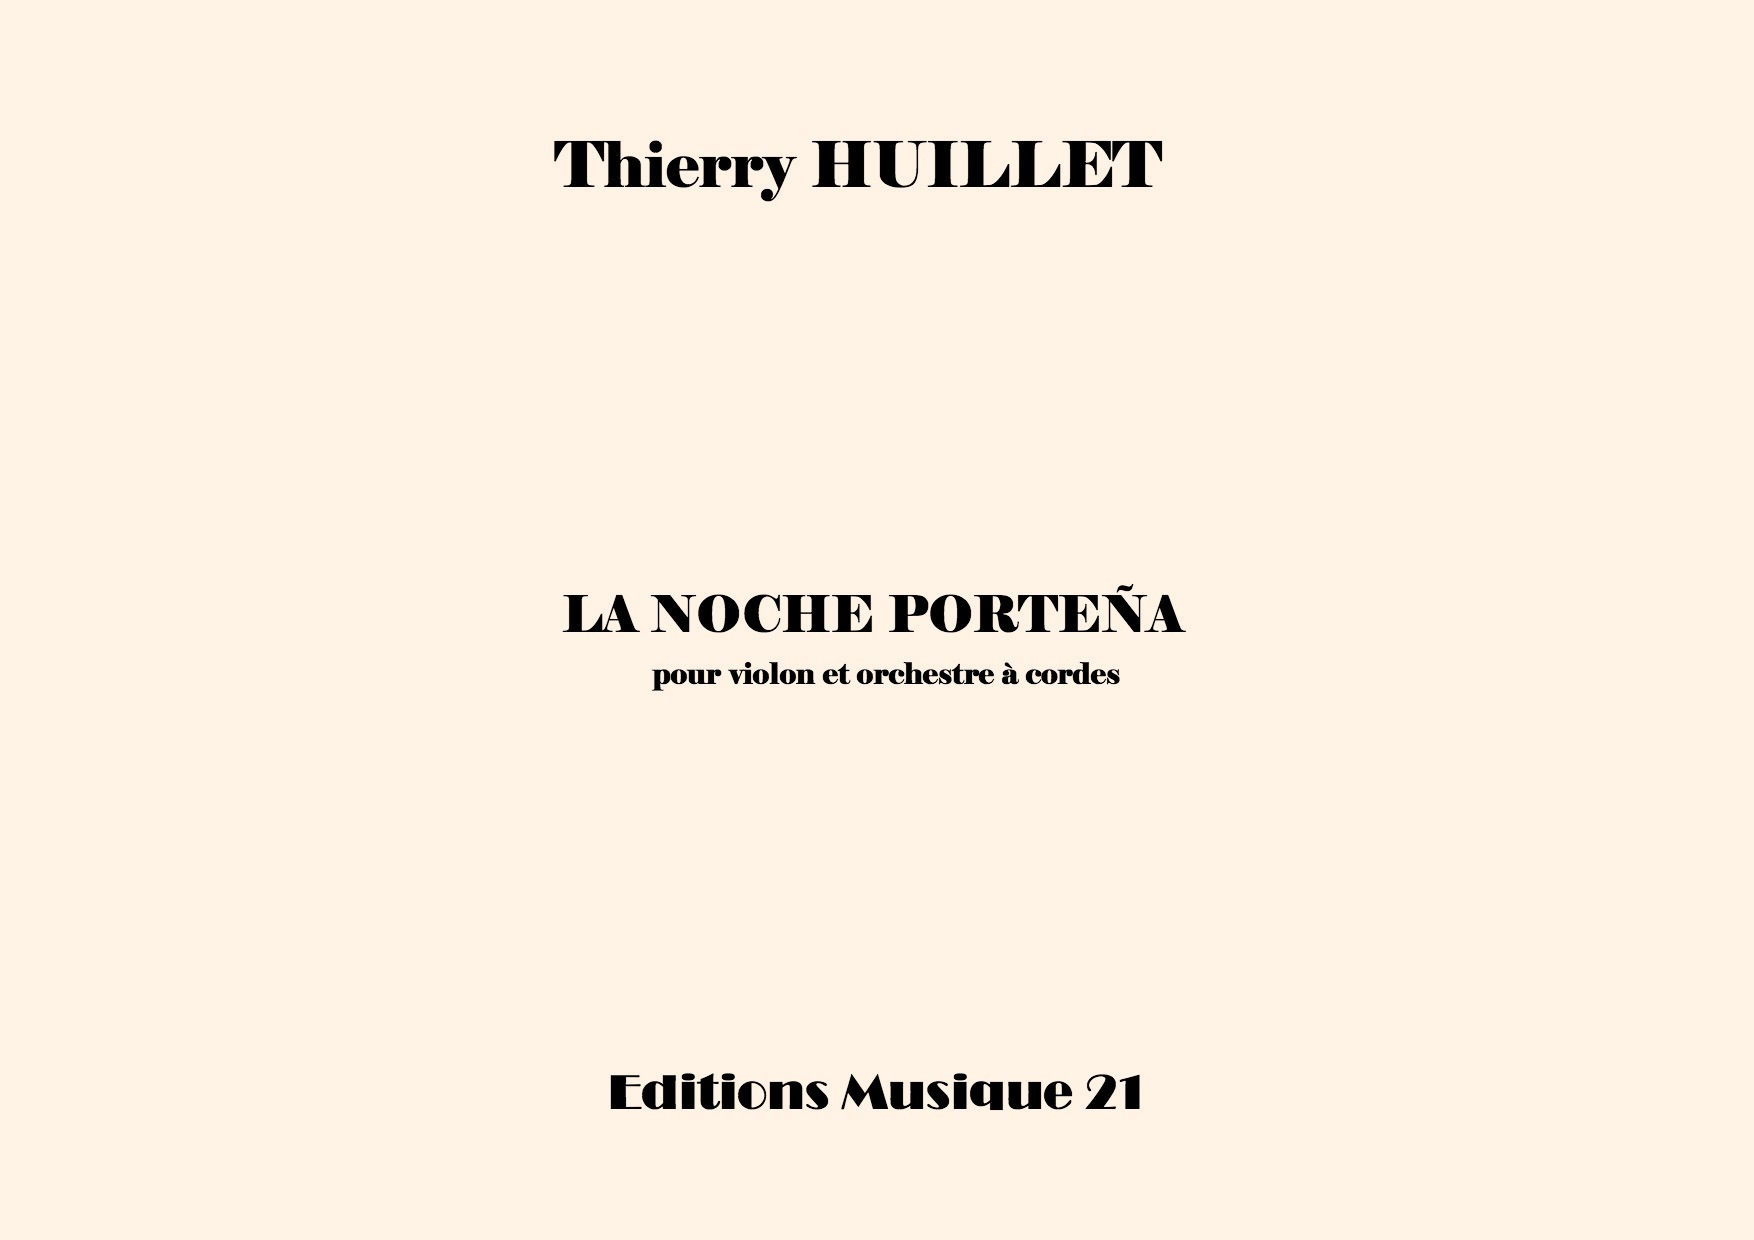 Thierry HUILLET – La Noche Porteña, For Violin And String Orchestra